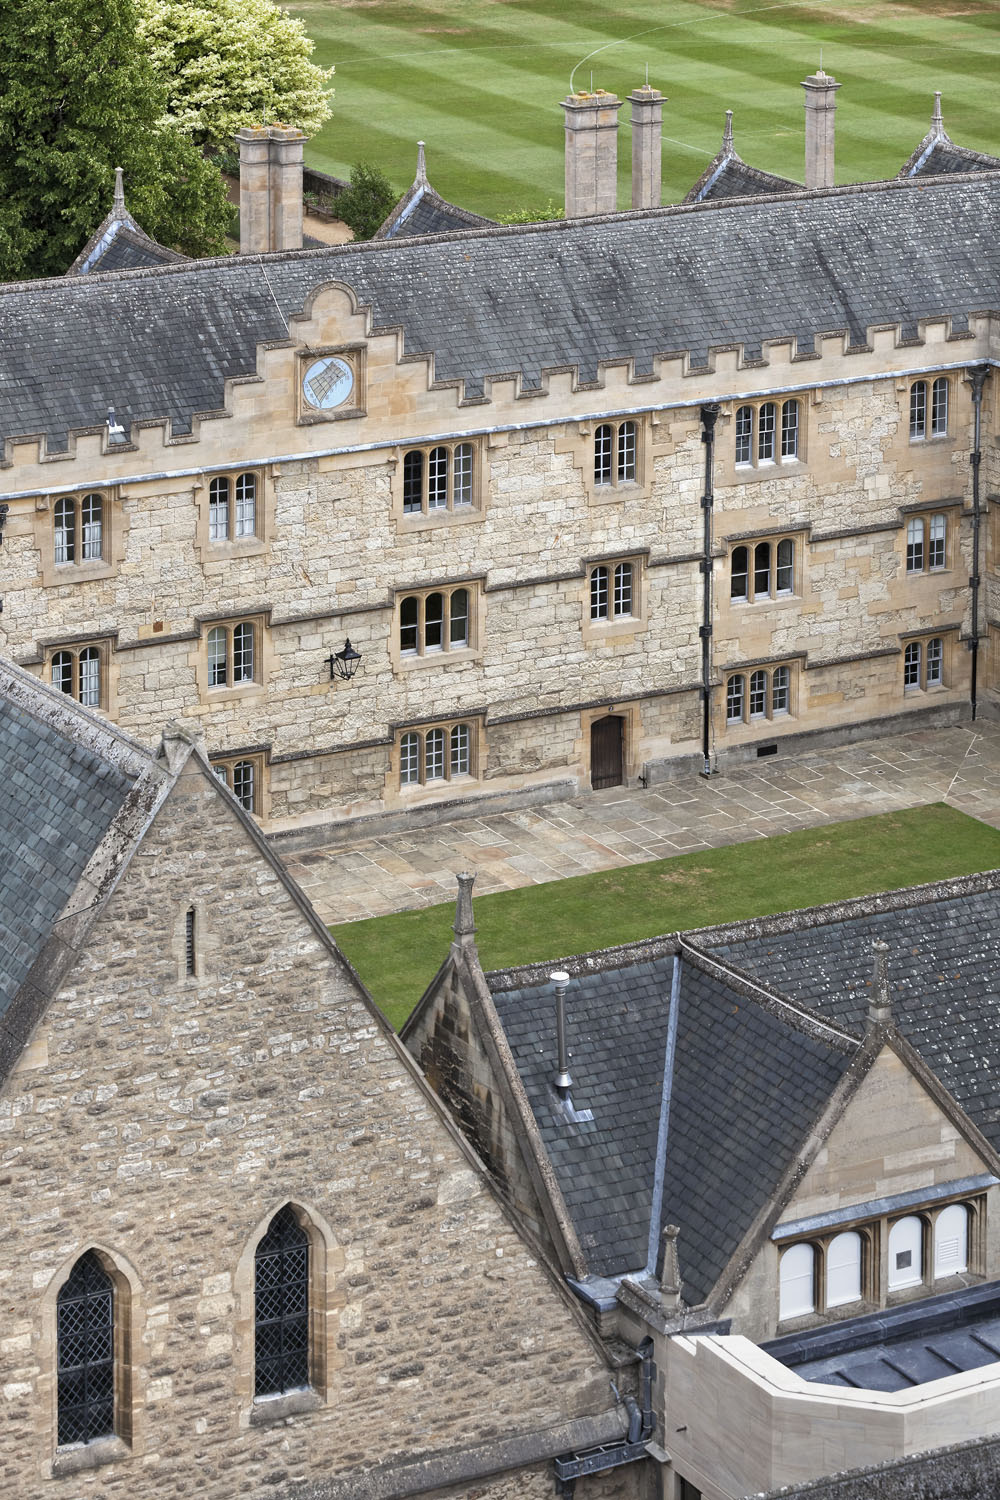 View of Front Quad from Chapel Tower, Merton College, Oxford, UK